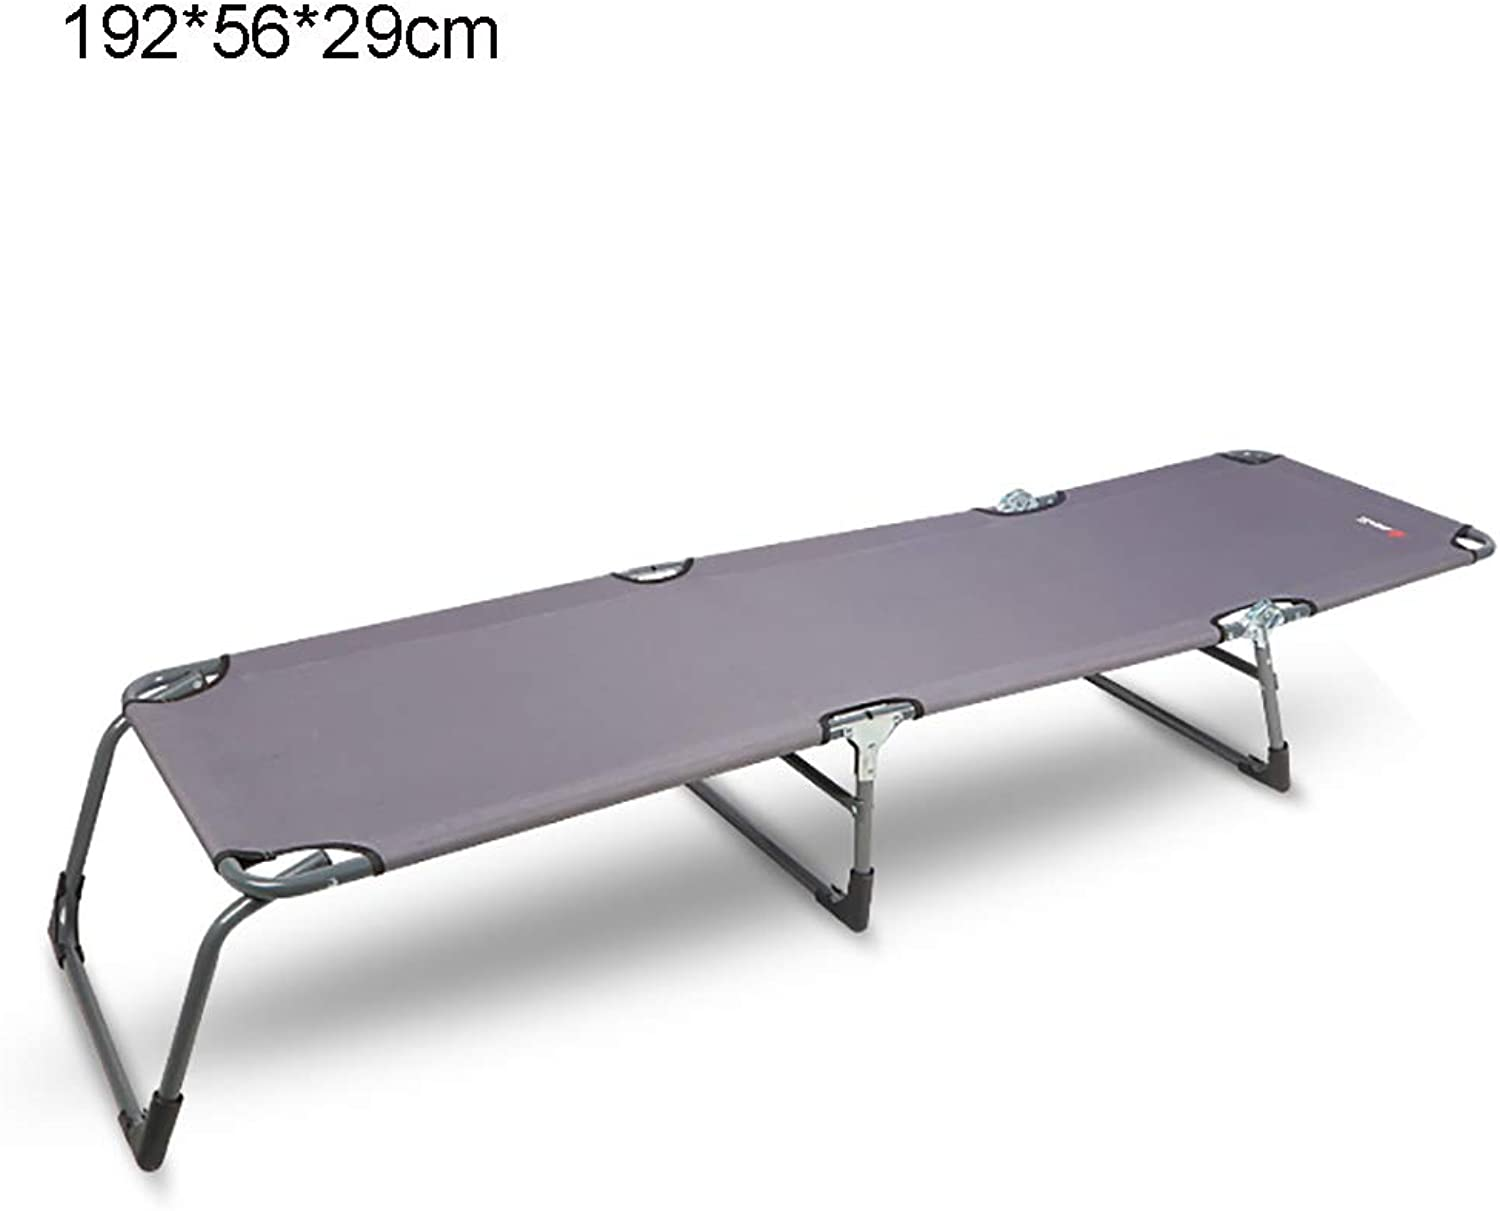 Simple Steel Frame Folding Bed Beach Bed Pool Bed(192  56  29cm)